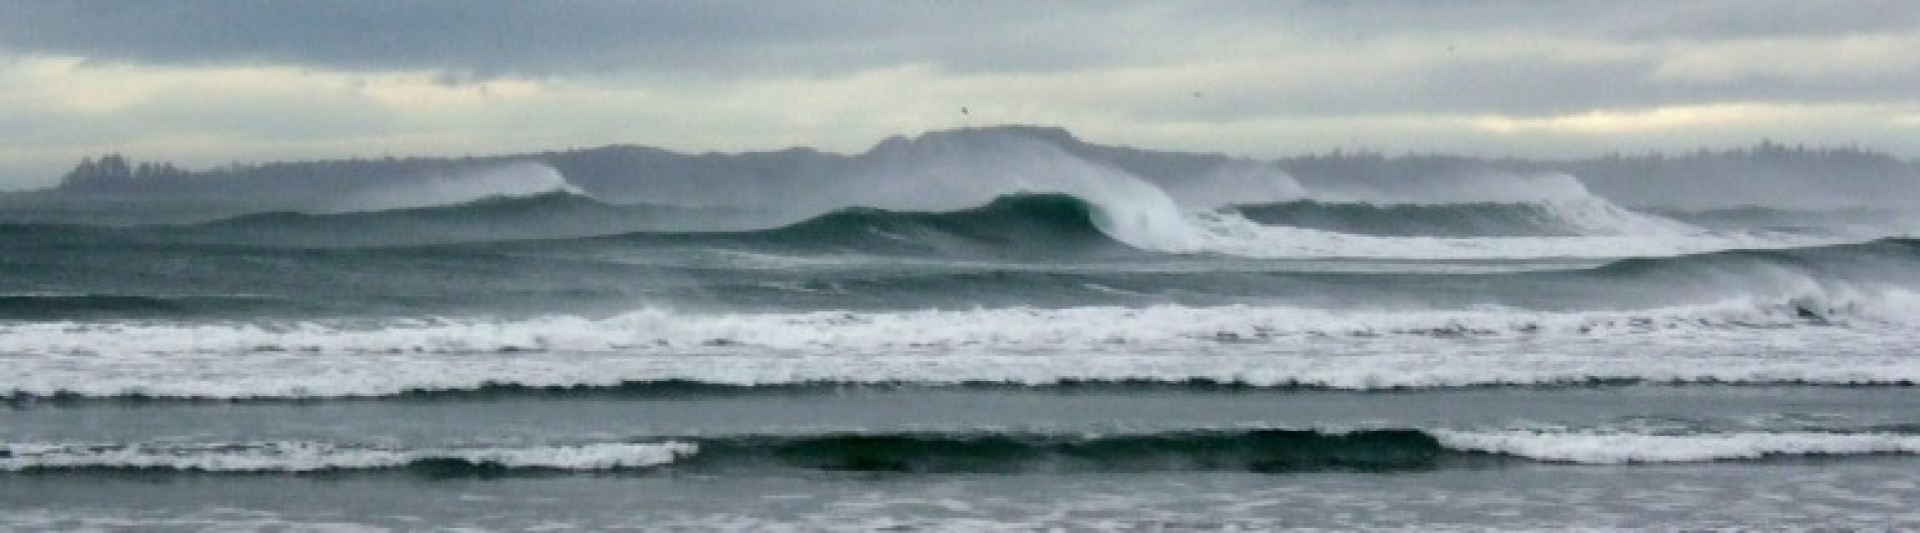 Jack beer's photo of Vancouver Island North (Long Beach)